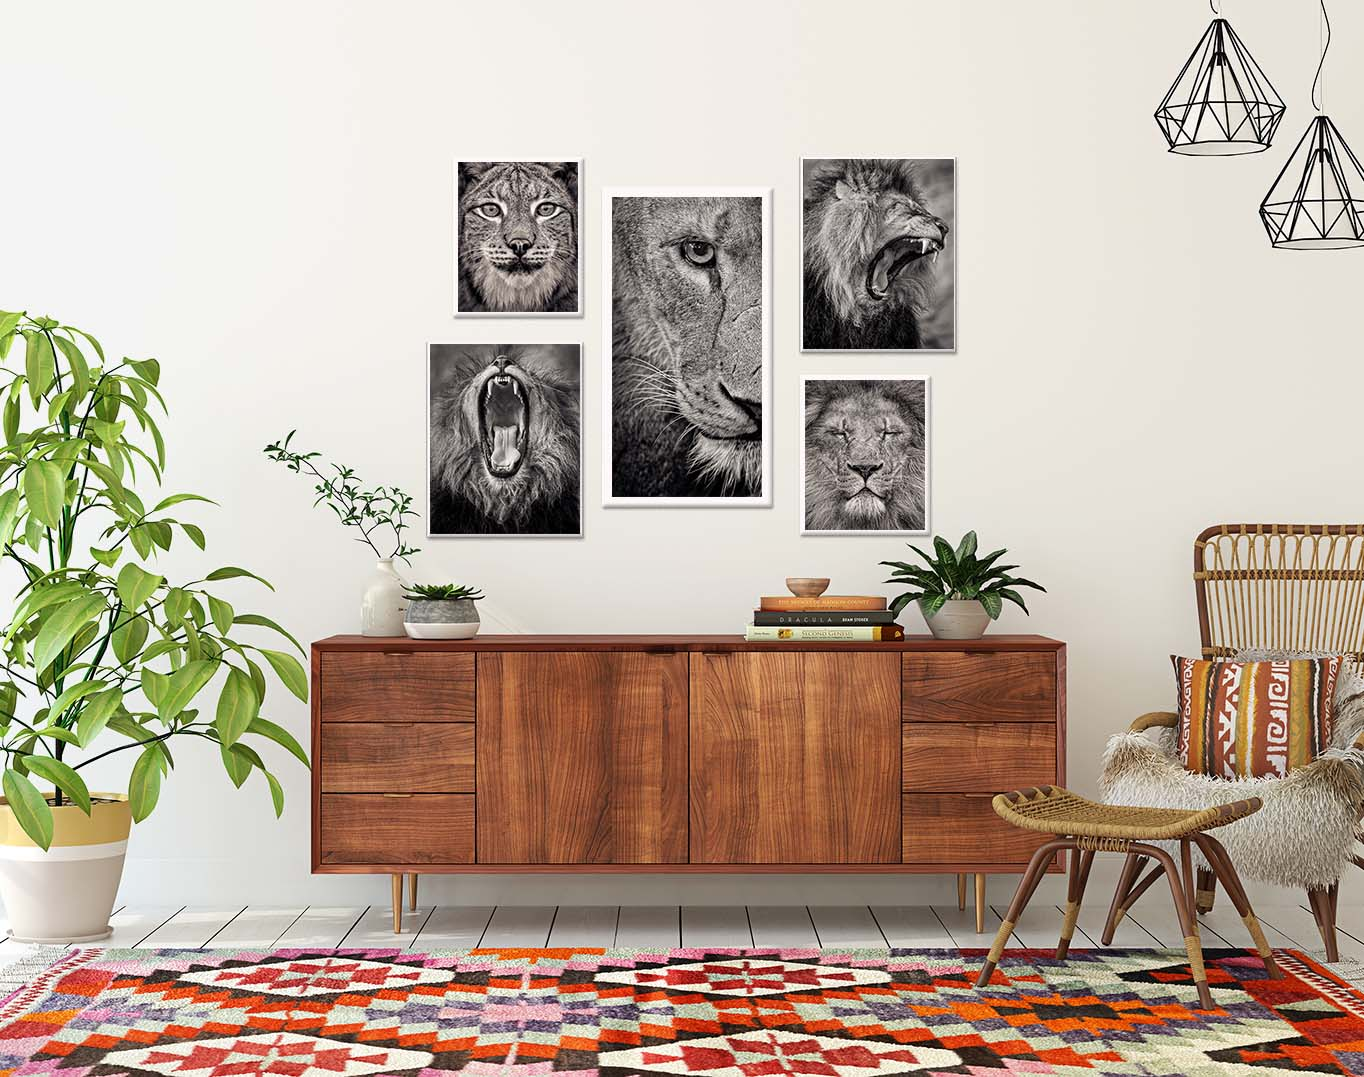 Lioness stalking. Black and white photographic print of a lioness by fine art photographer Paul Coghlin. Shown in a living room setting.